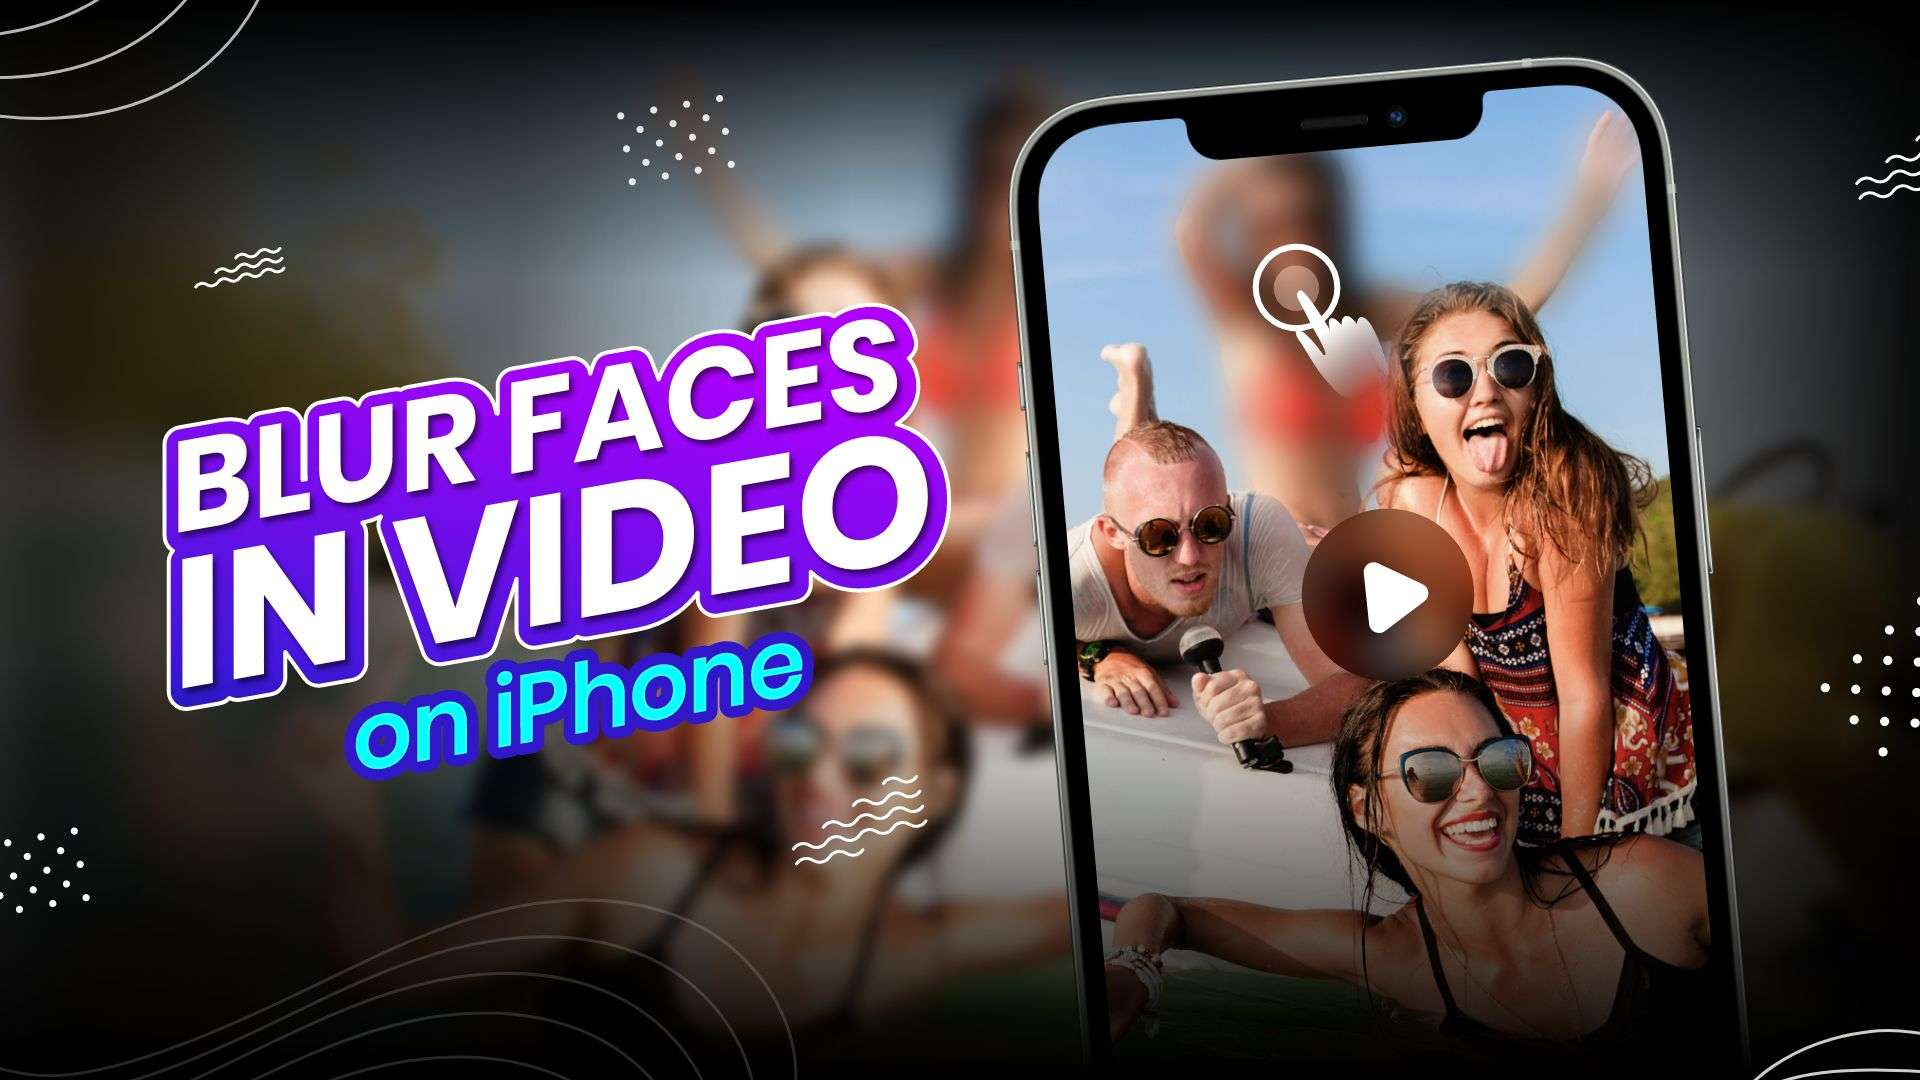 How to blur face in video on iPhone